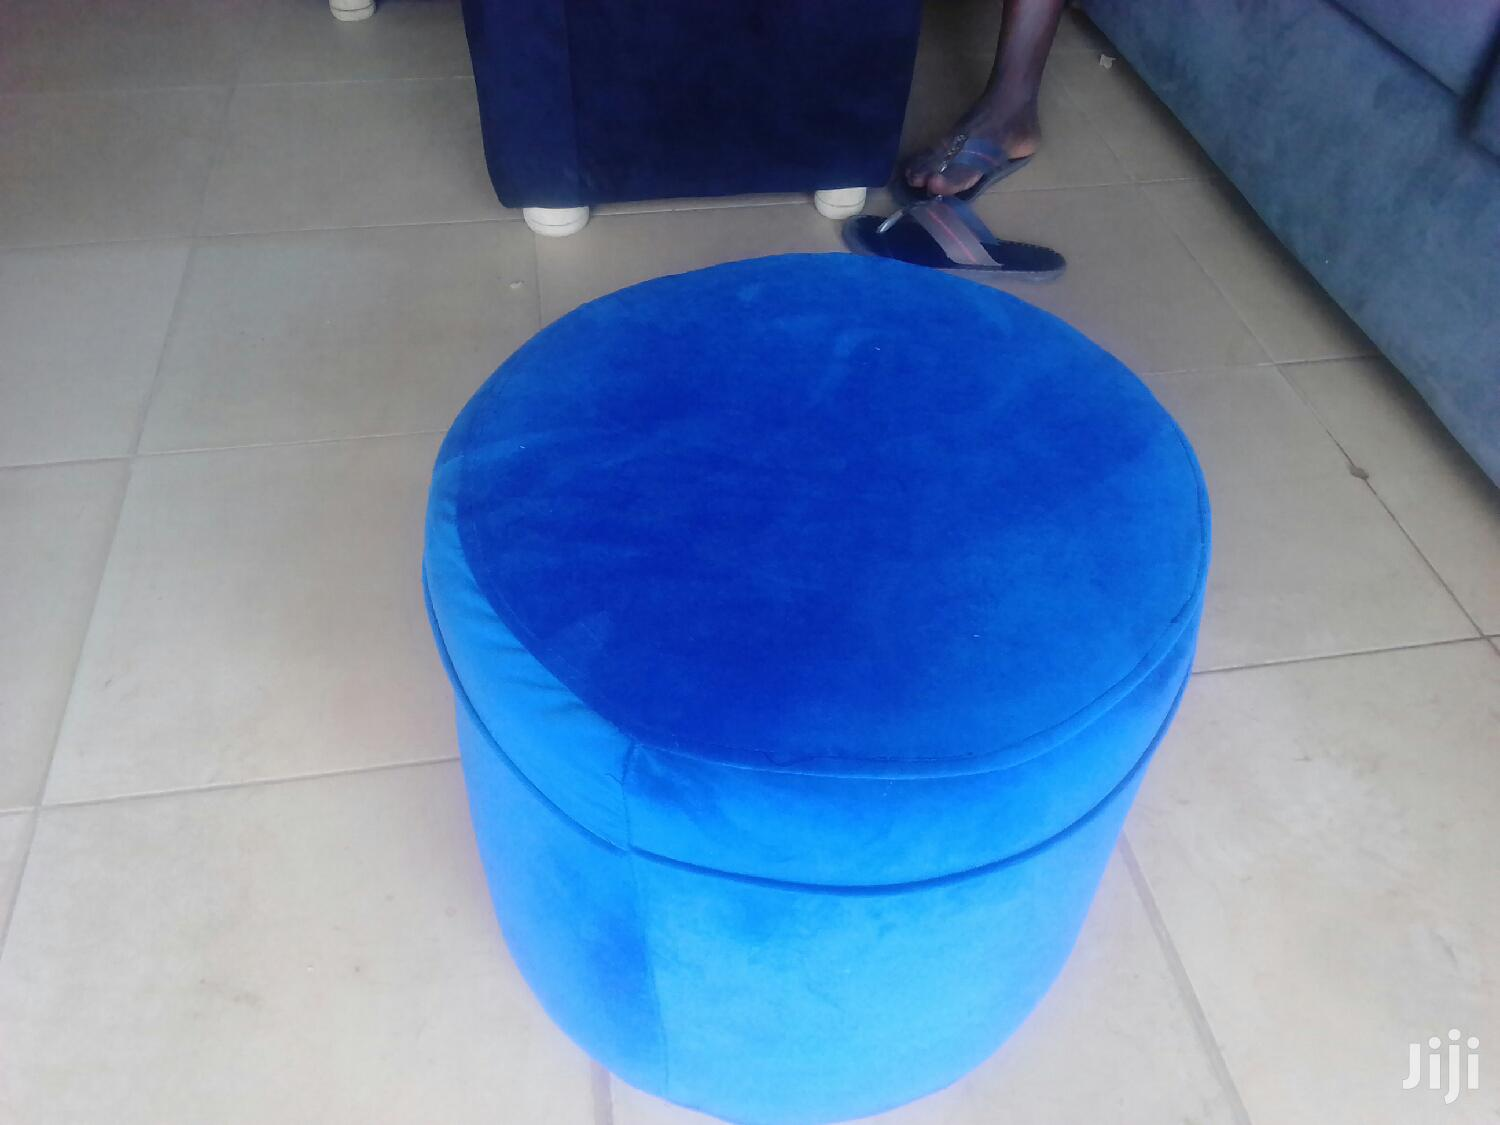 Puffs Of Gud Quality In Blue Colour | Furniture for sale in Kampala, Central Region, Uganda